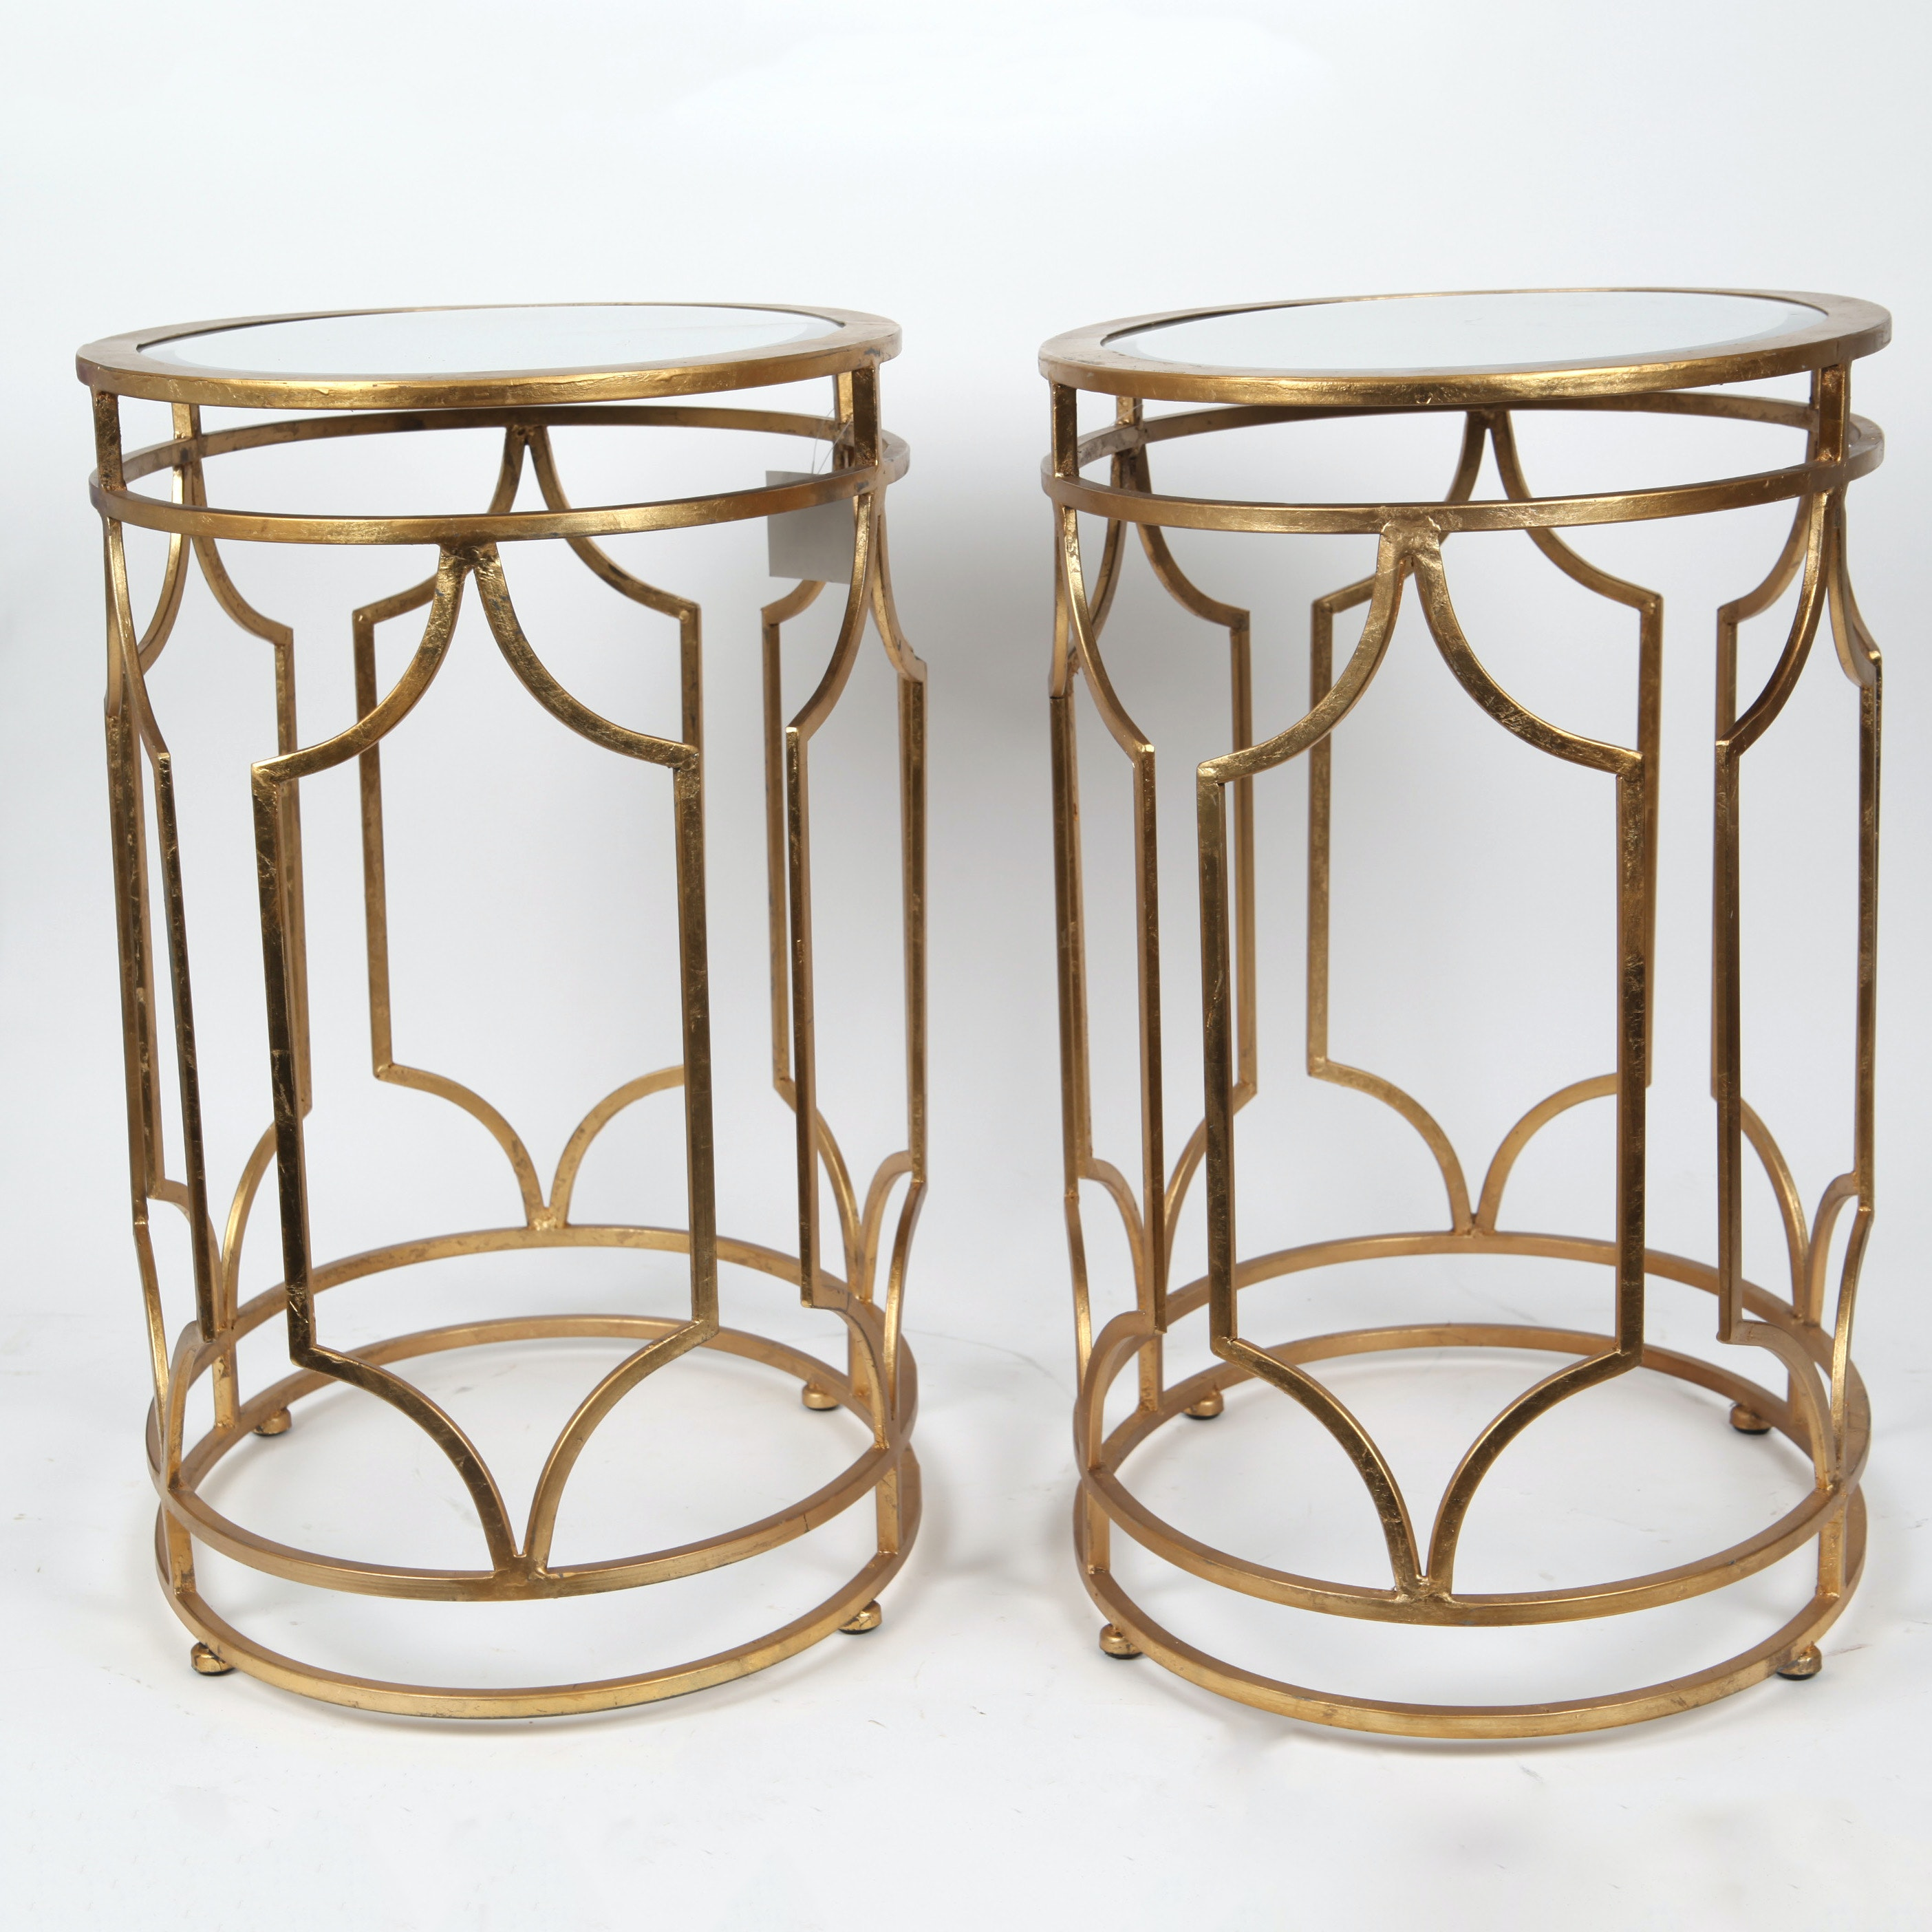 Pair of Metal Drum Tables with Glass Tops